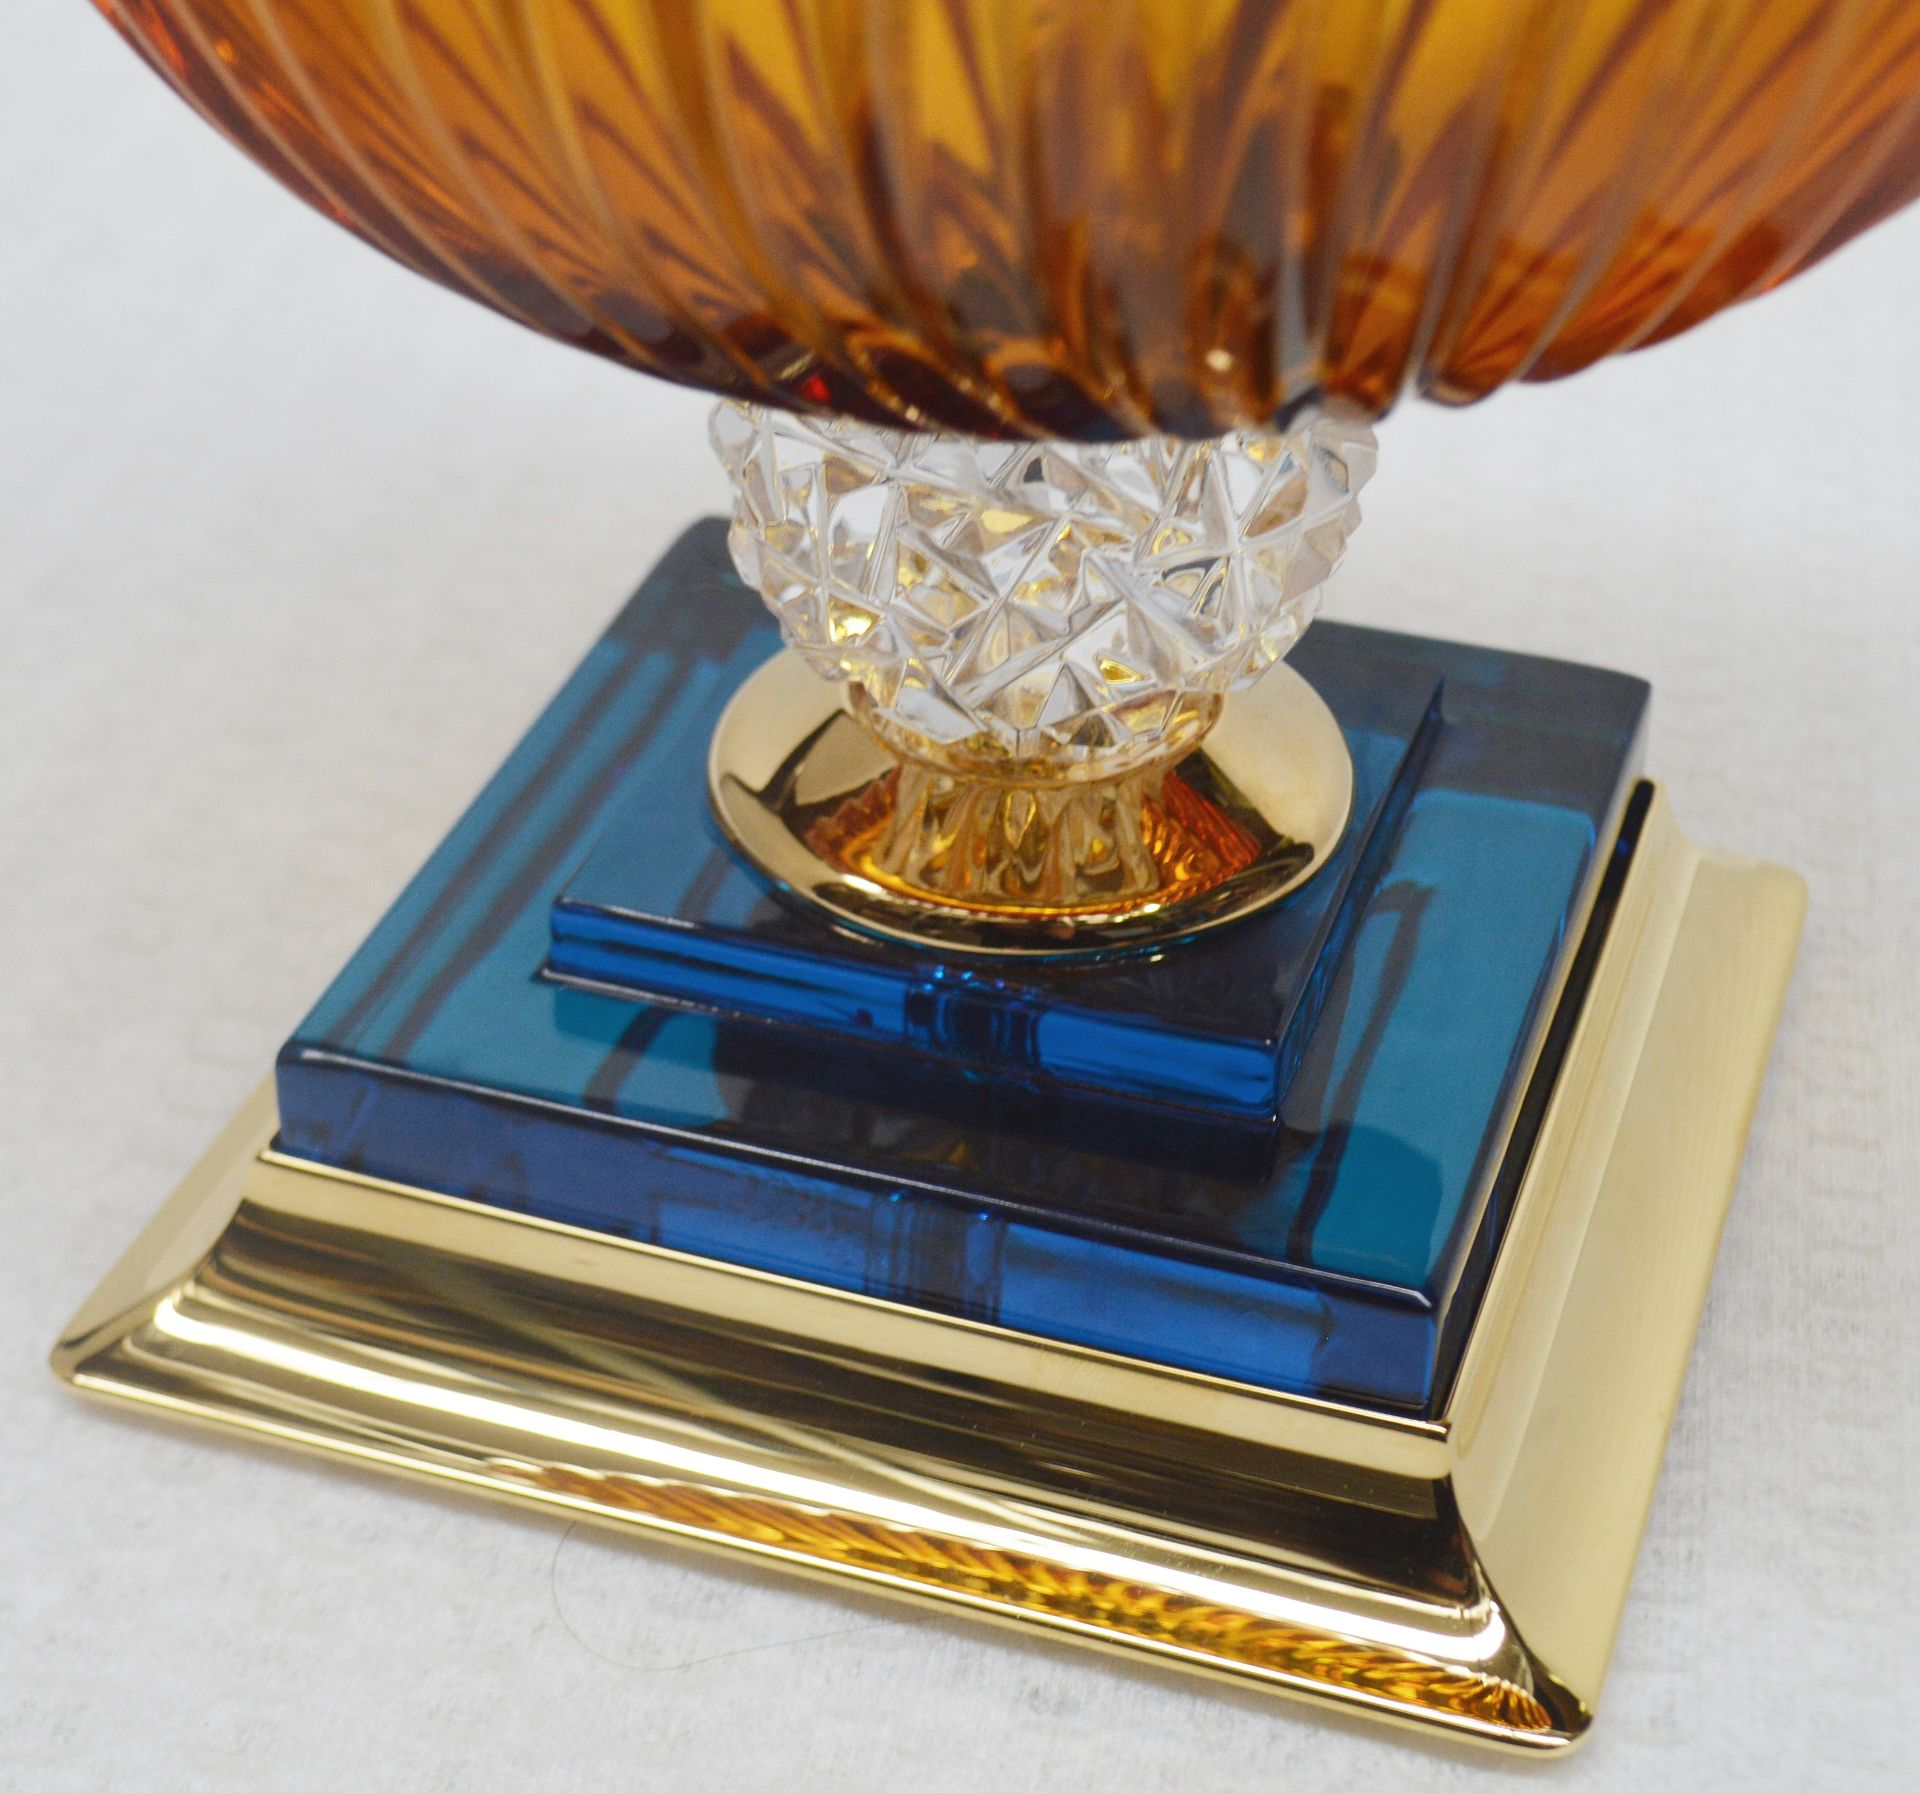 1 x BALDI 'Home Jewels' Italian Hand-crafted Artisan Coccinella Cup, In Orange & Blue Charme - Image 5 of 5